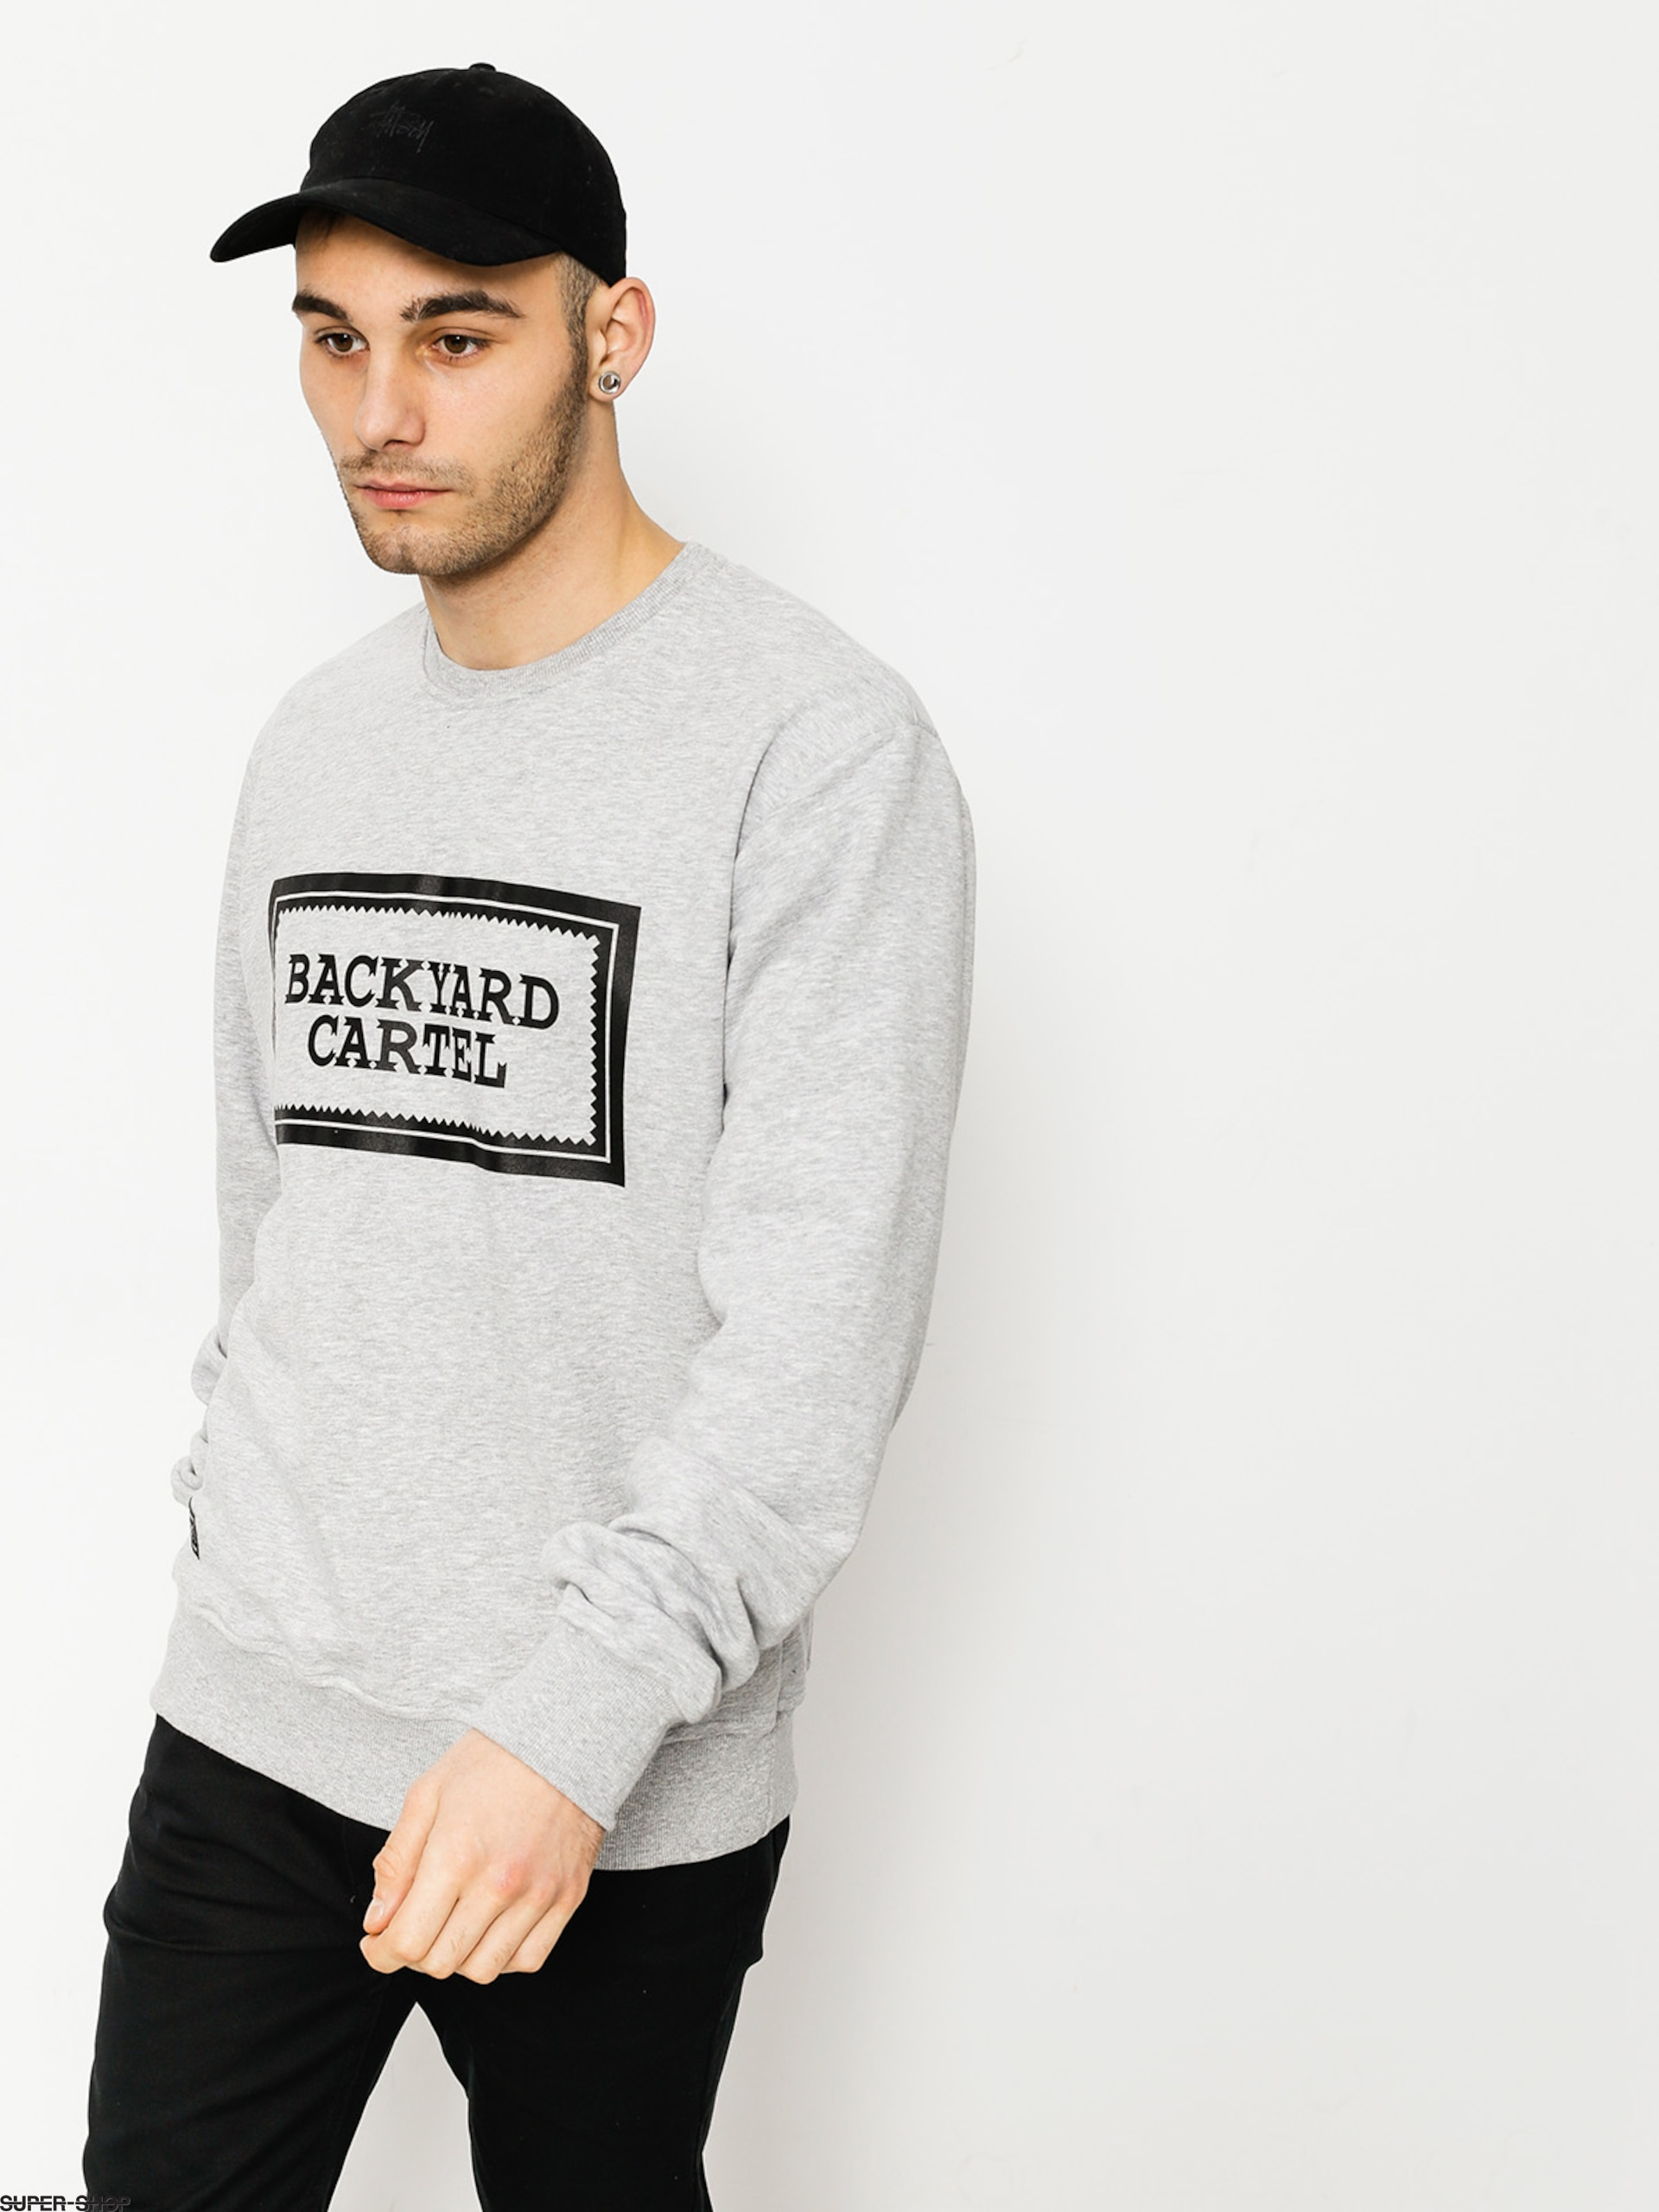 Backyard Cartel Sweatshirt Label Logo